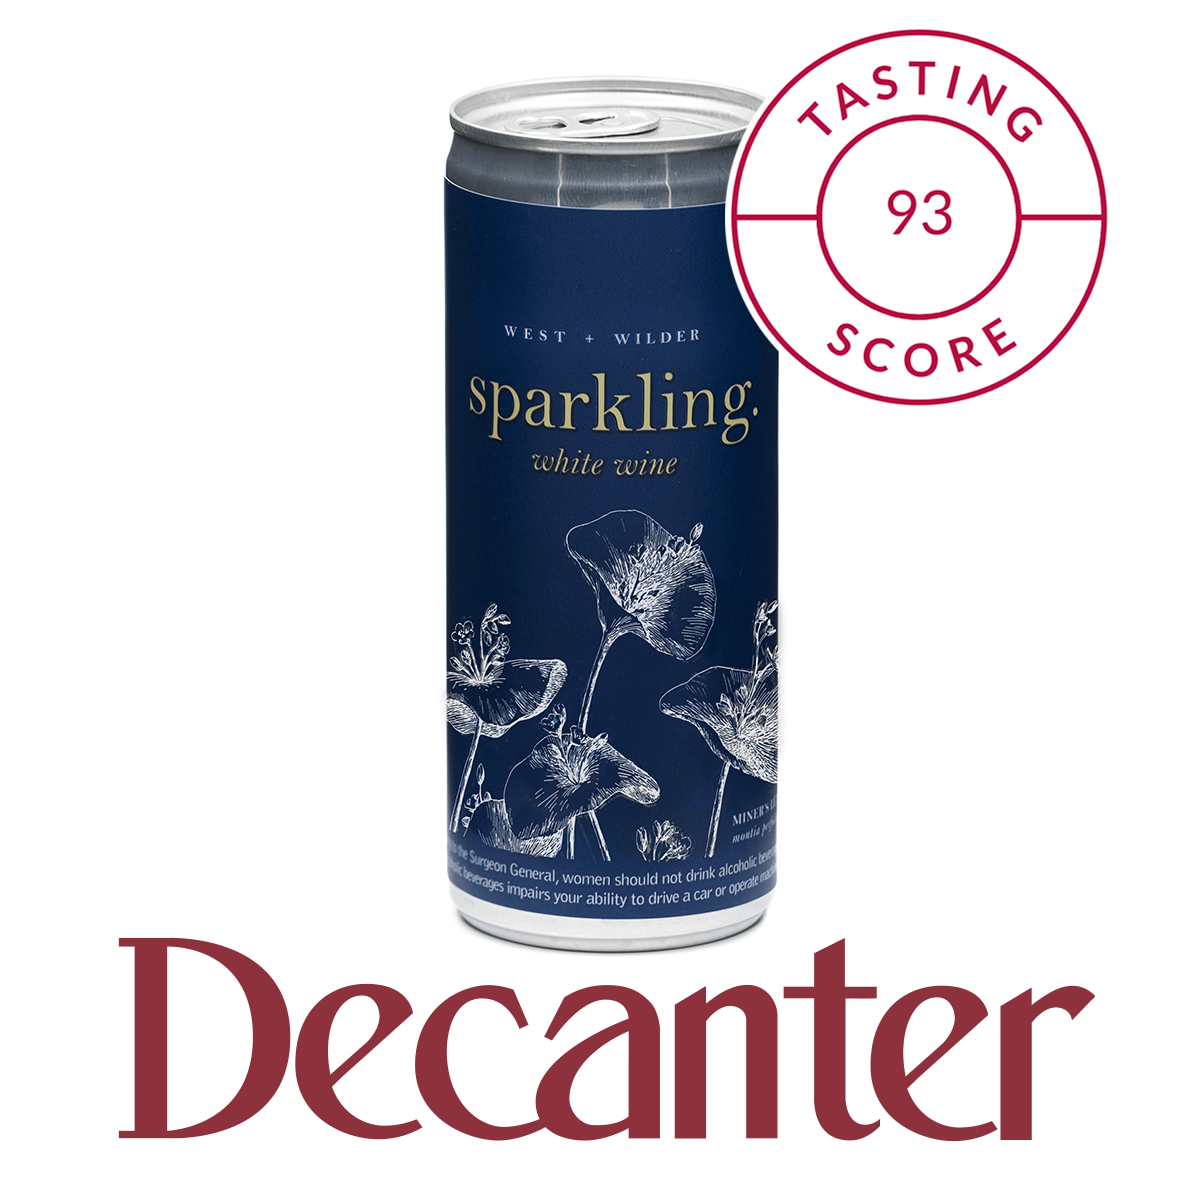 Decanter_93_Sparkling_White.png